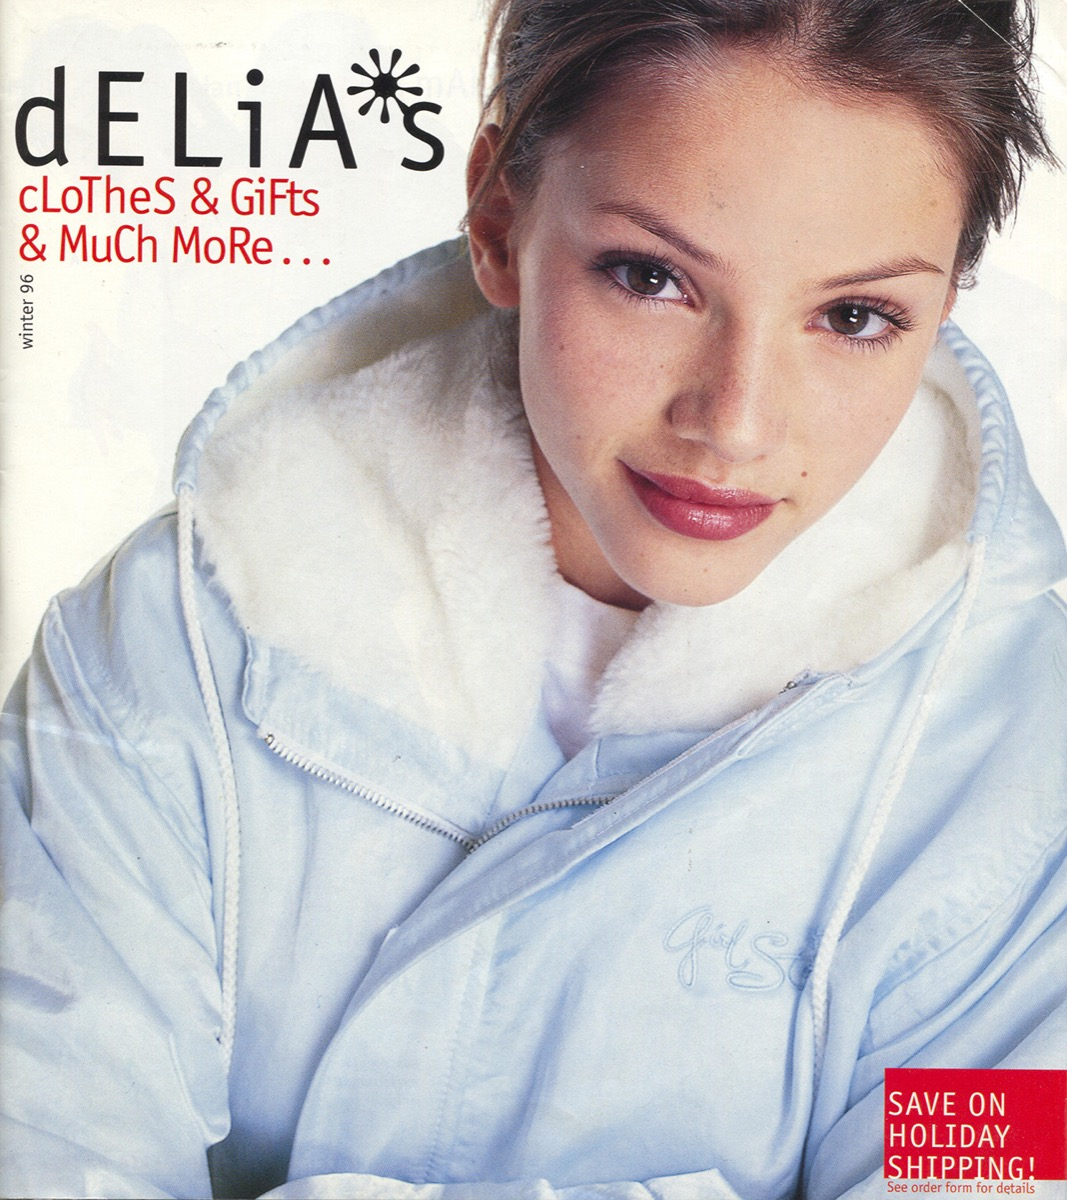 delia's catalog, things only 90s kids remember